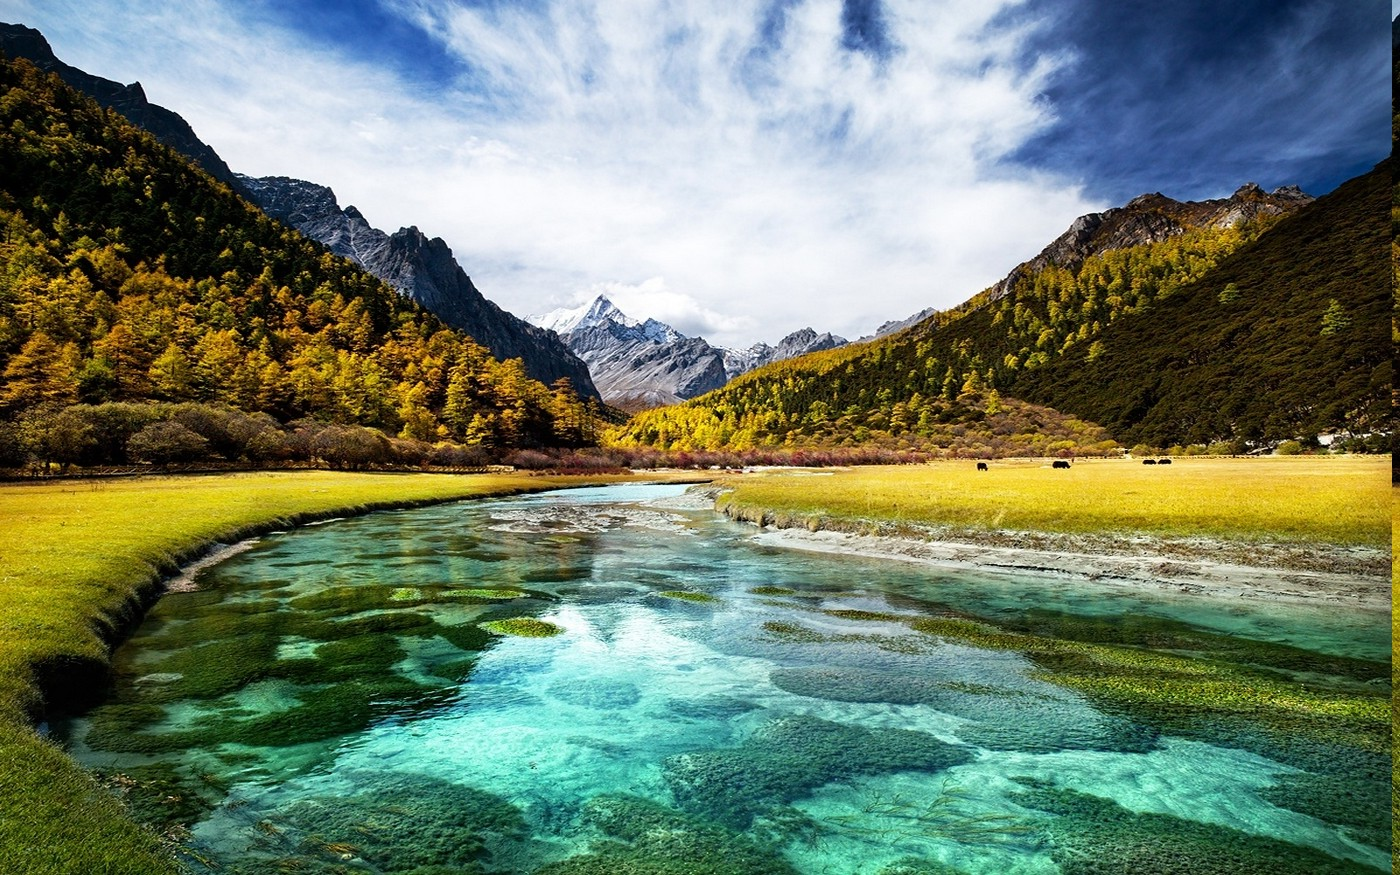 Himalaya Hd Wallpaper Landscape Nature Fall River Turquoise Water Mountain